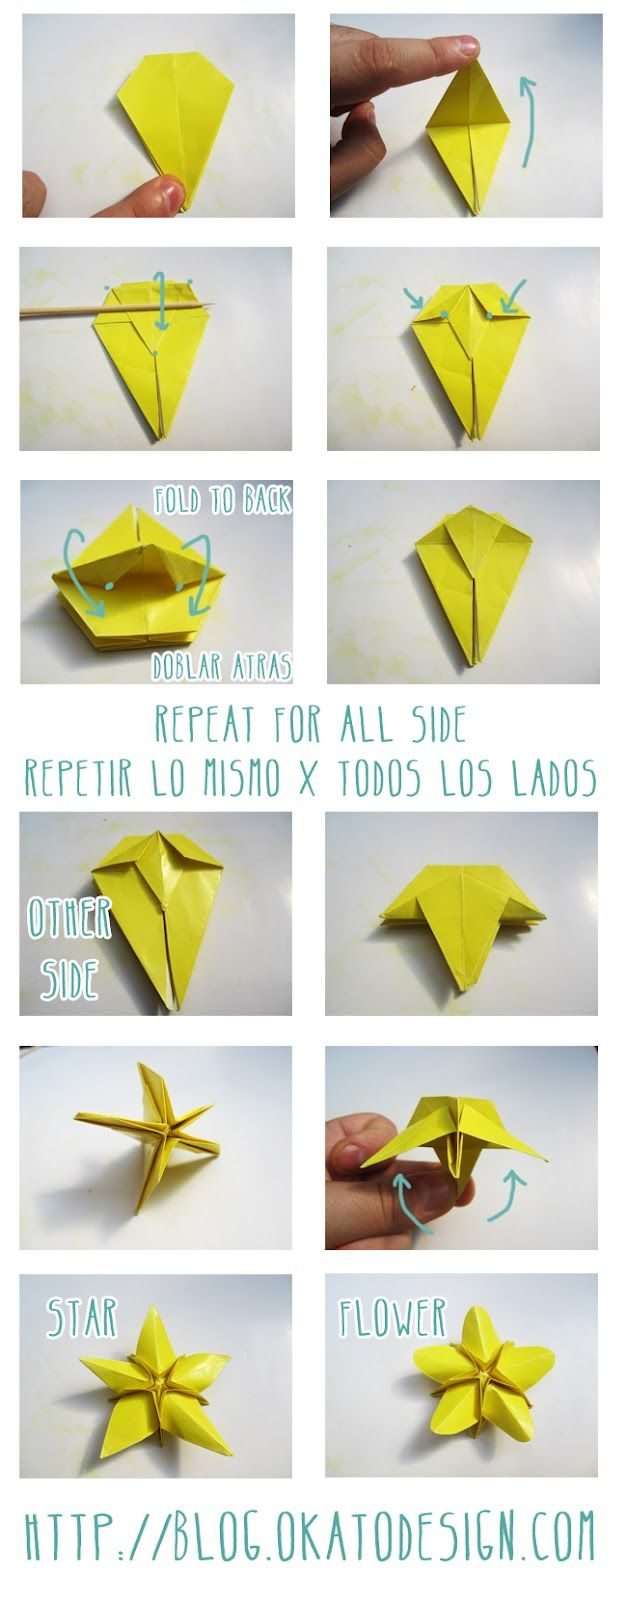 Diy star origami ornament origami star - Diy And Crafts Pic3 Origami S Star Flower Http Blog Okatodesign